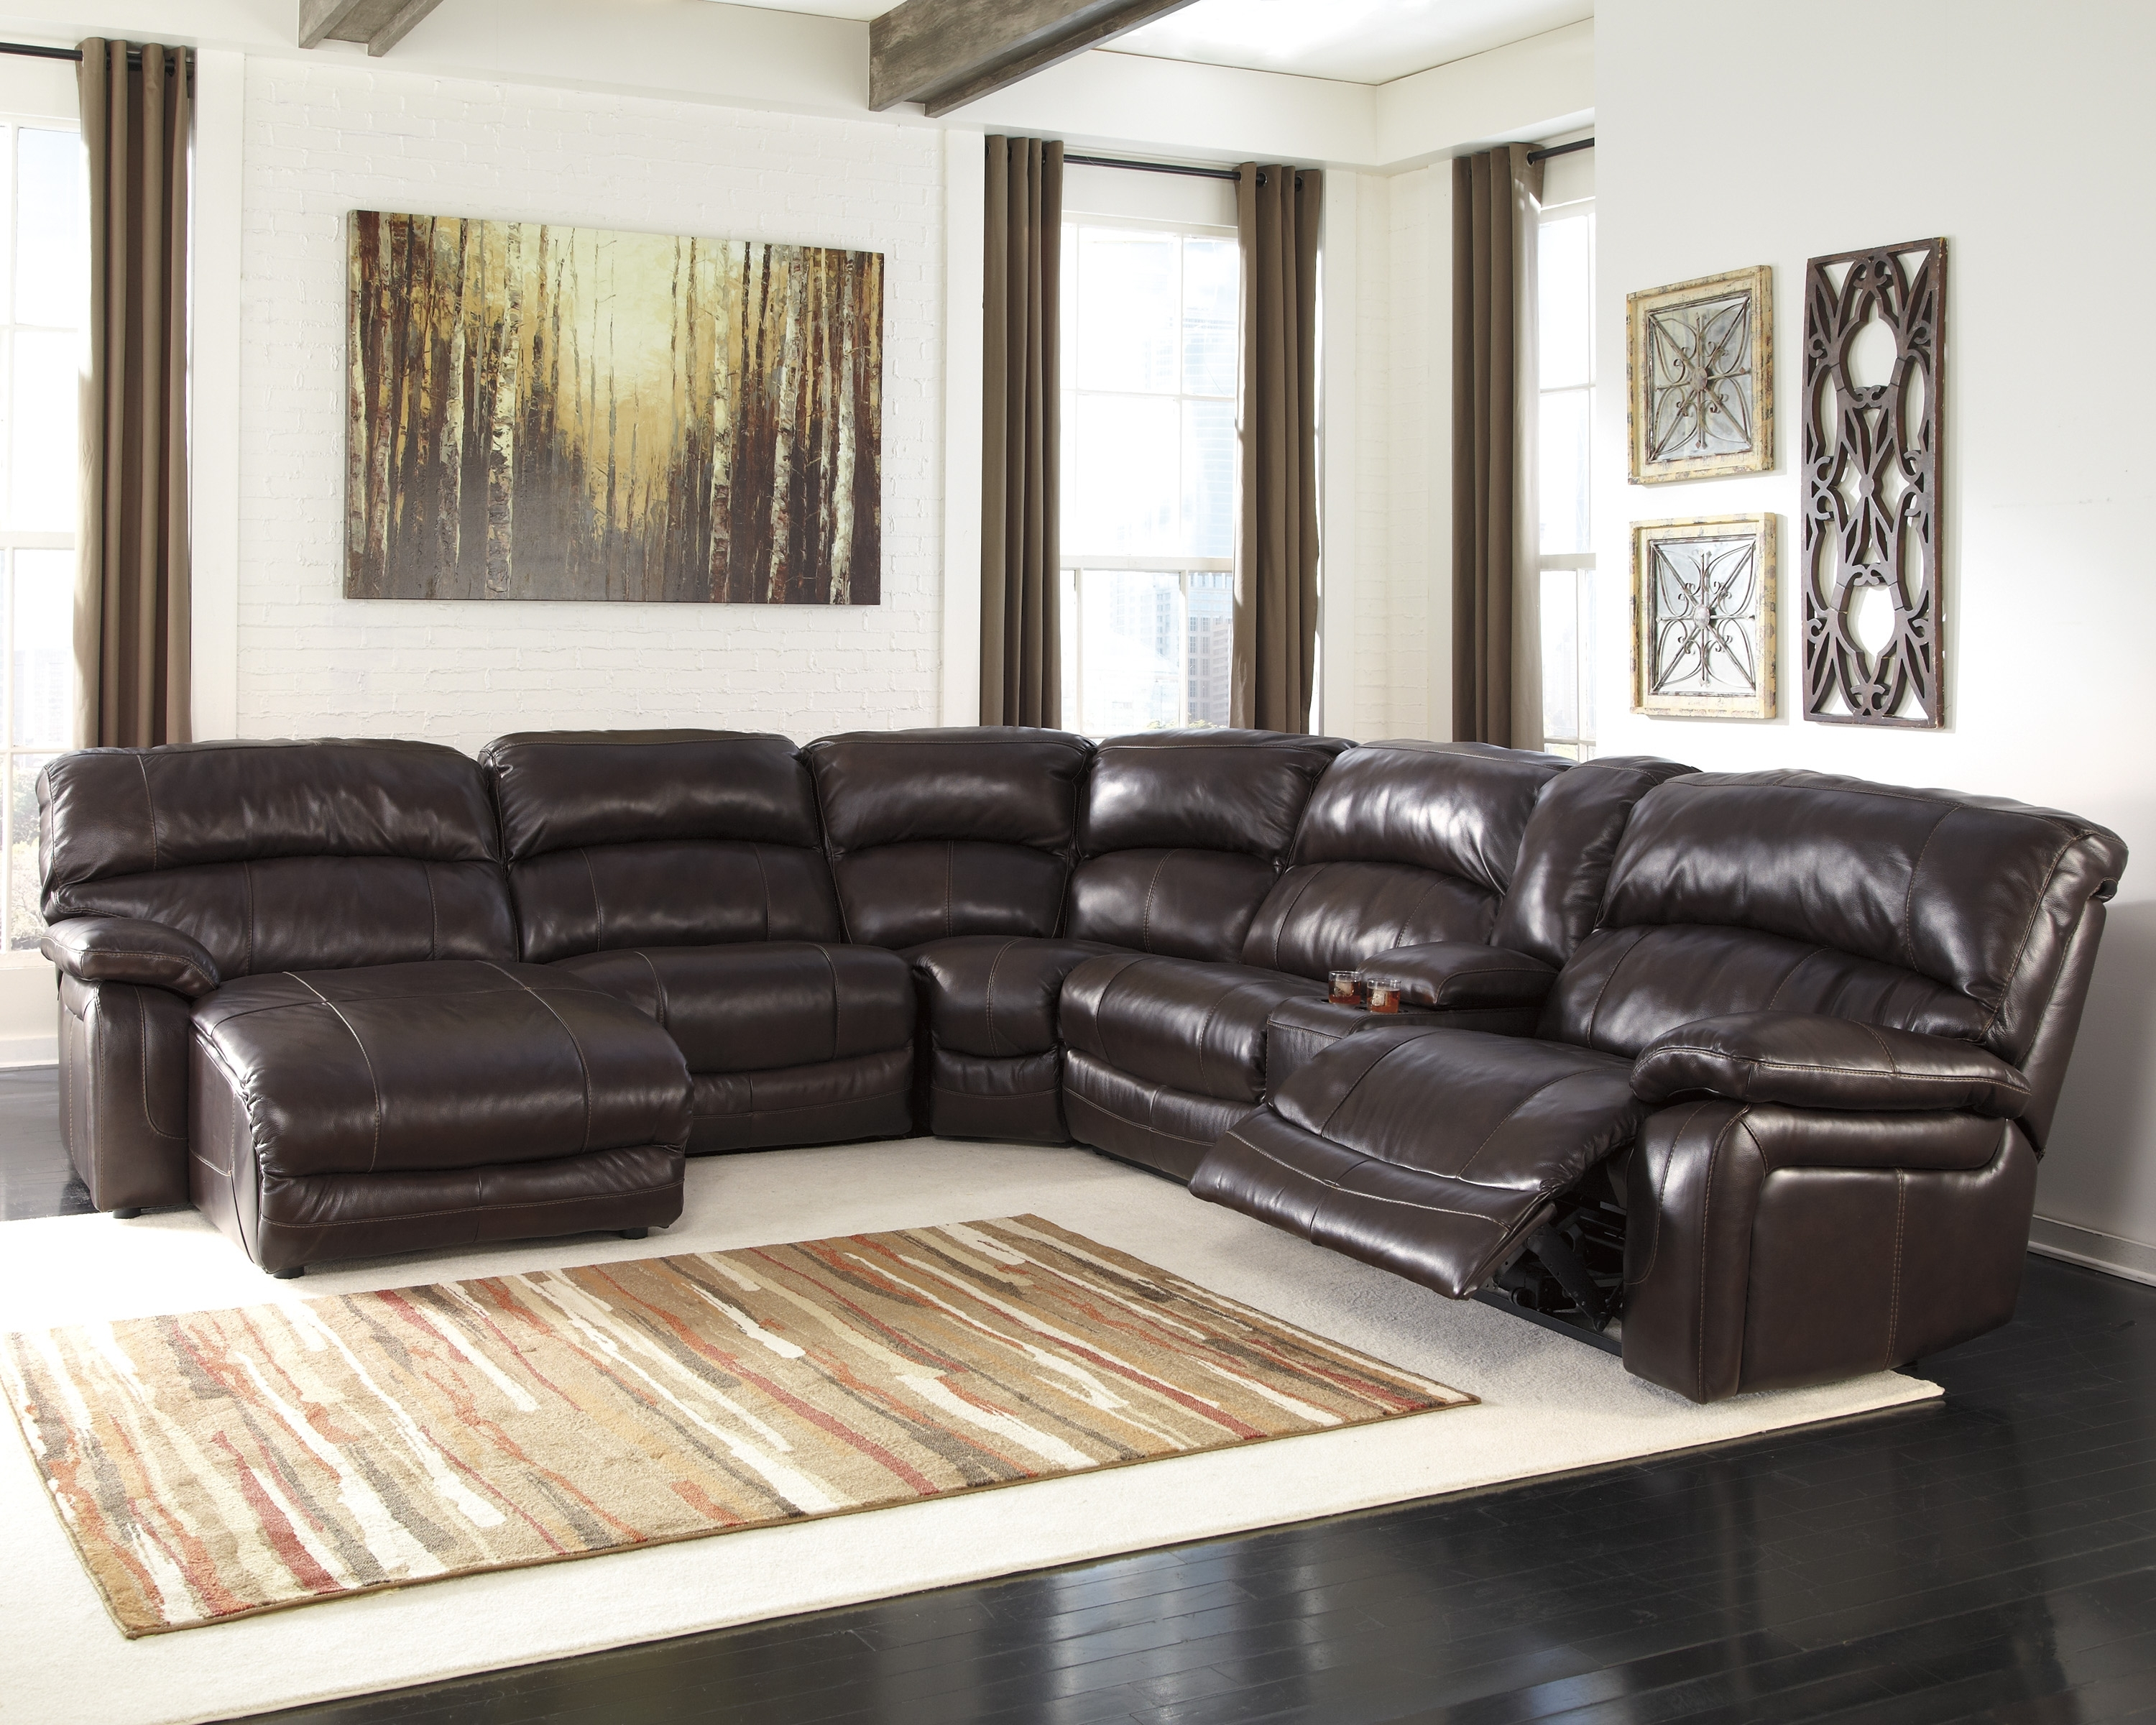 Most Recent Sectional Sofas With Recliners And Chaise With Regard To Leather Sectional Sofas With Recliners And Cup Holders Sectional (View 6 of 15)